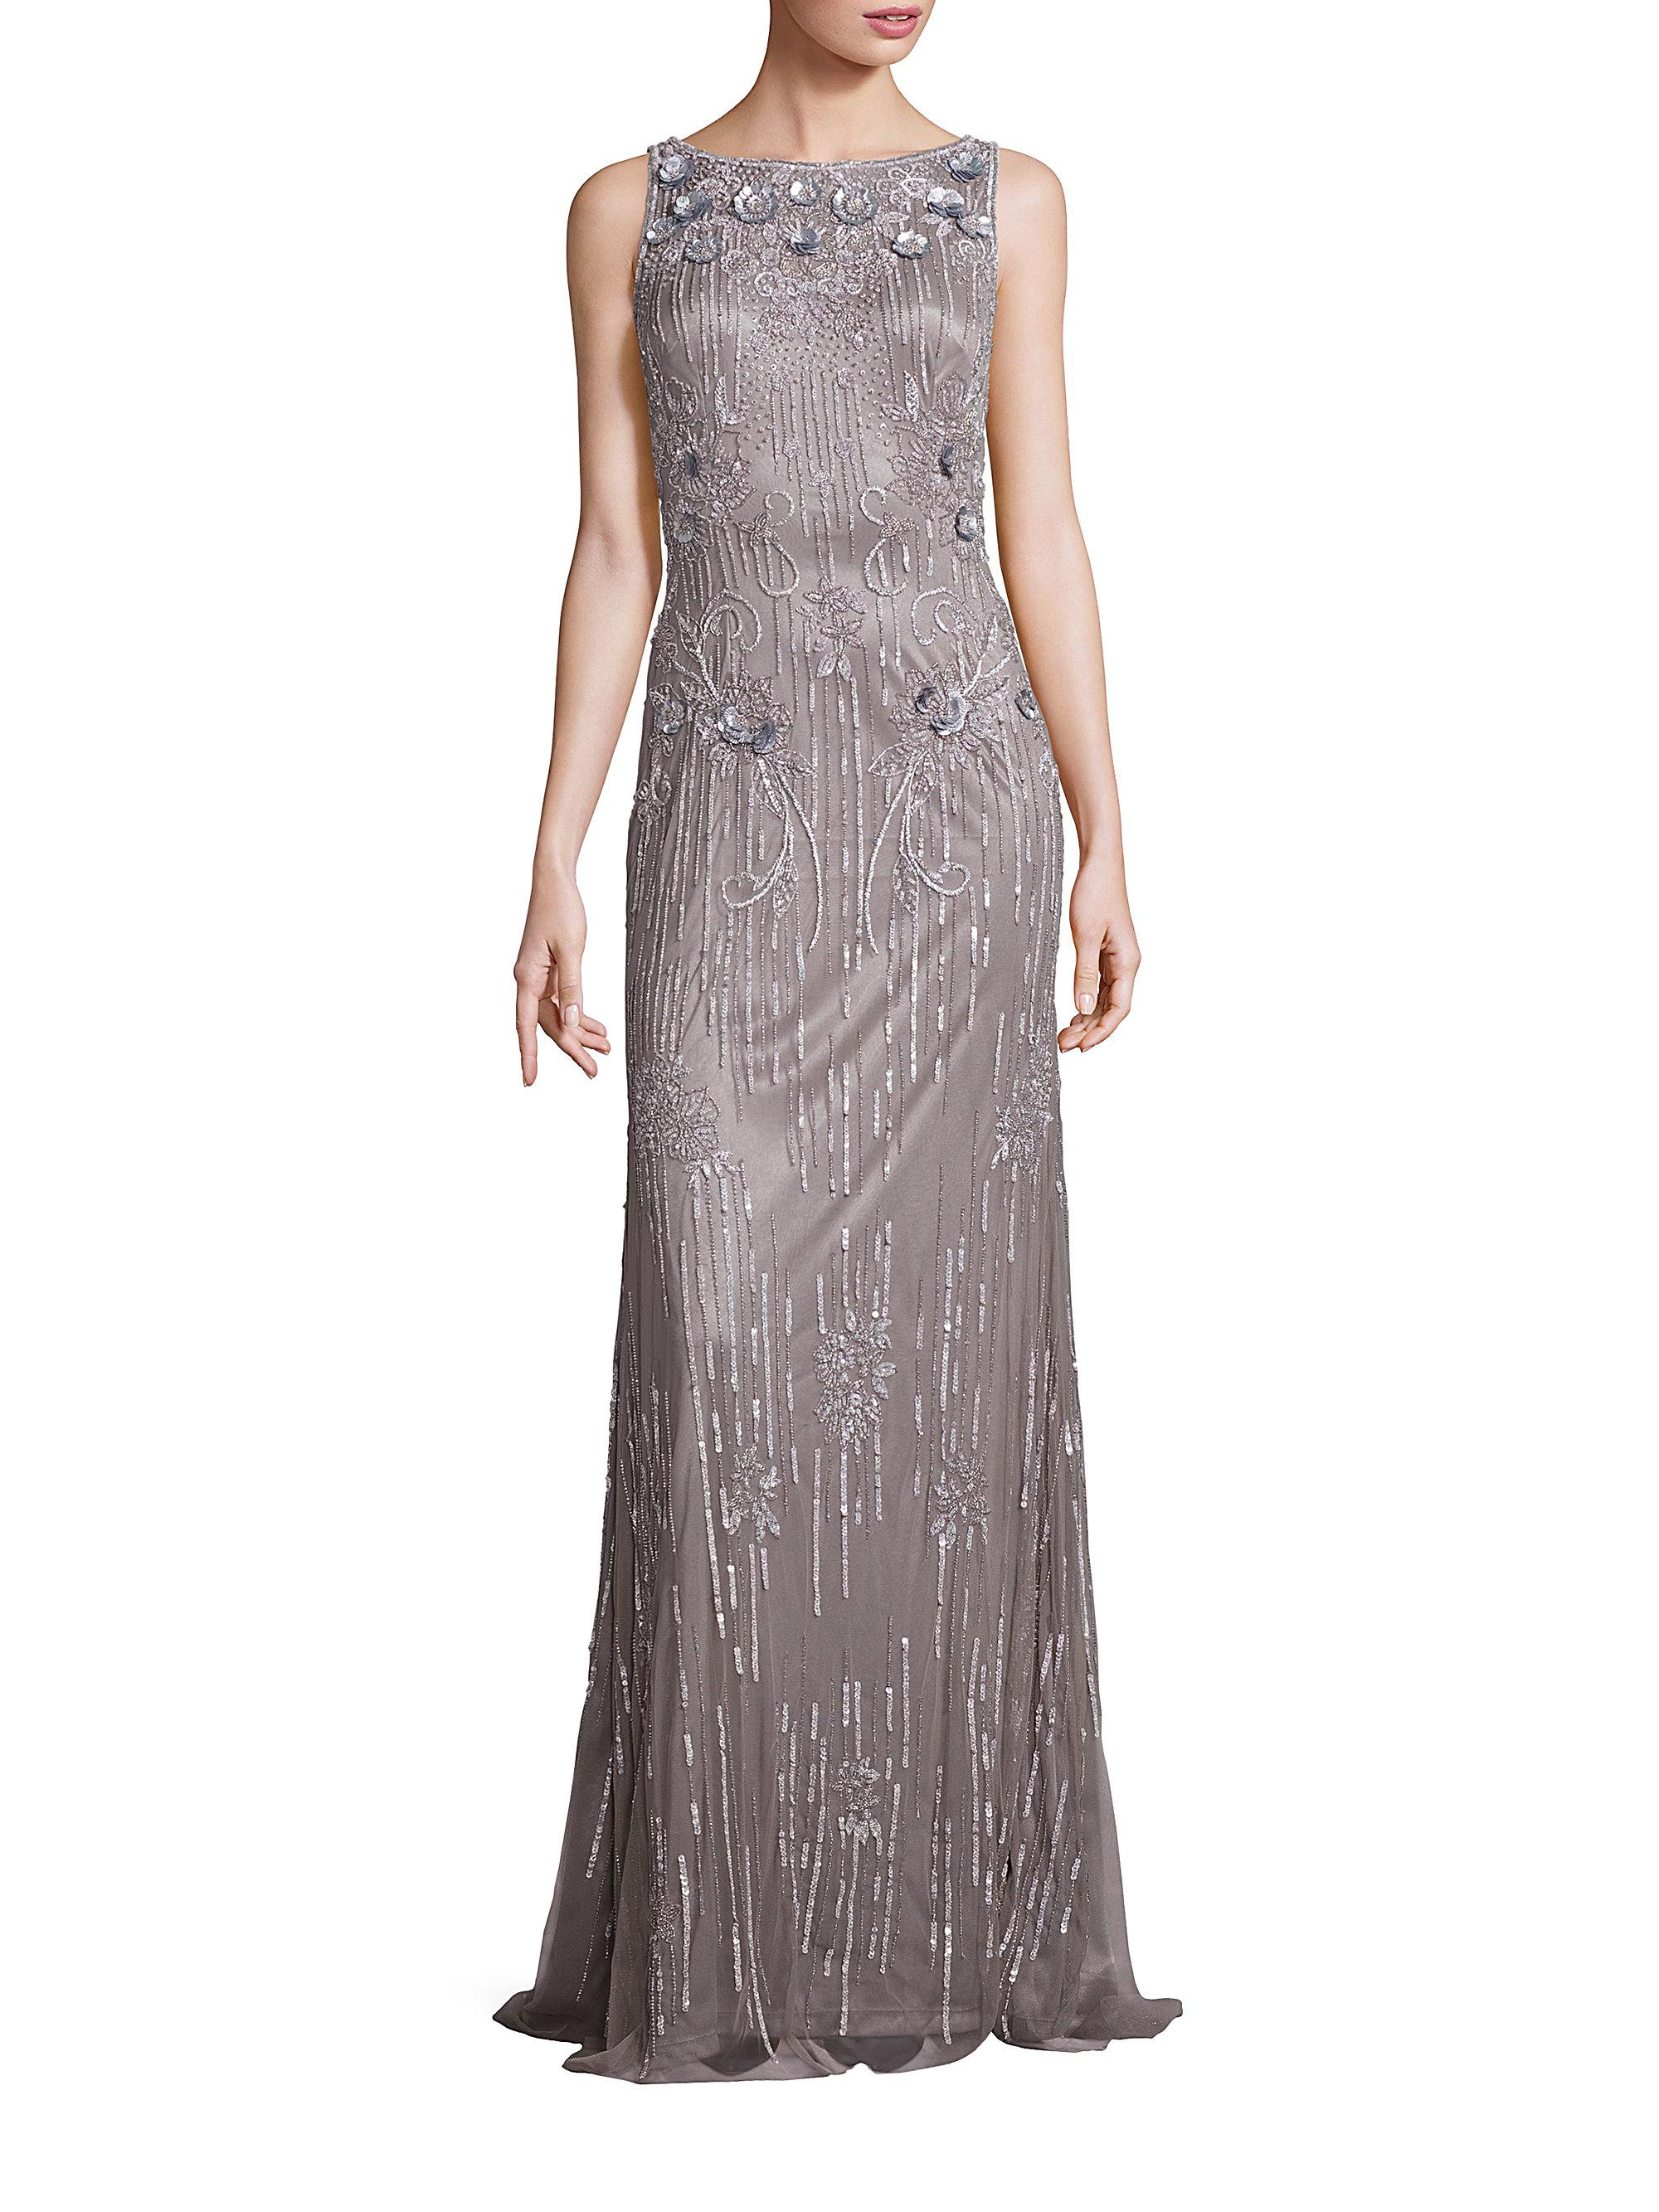 6a38f26aff54 Lyst - THEIA Sleeveless Sequin Beaded Gown in Metallic